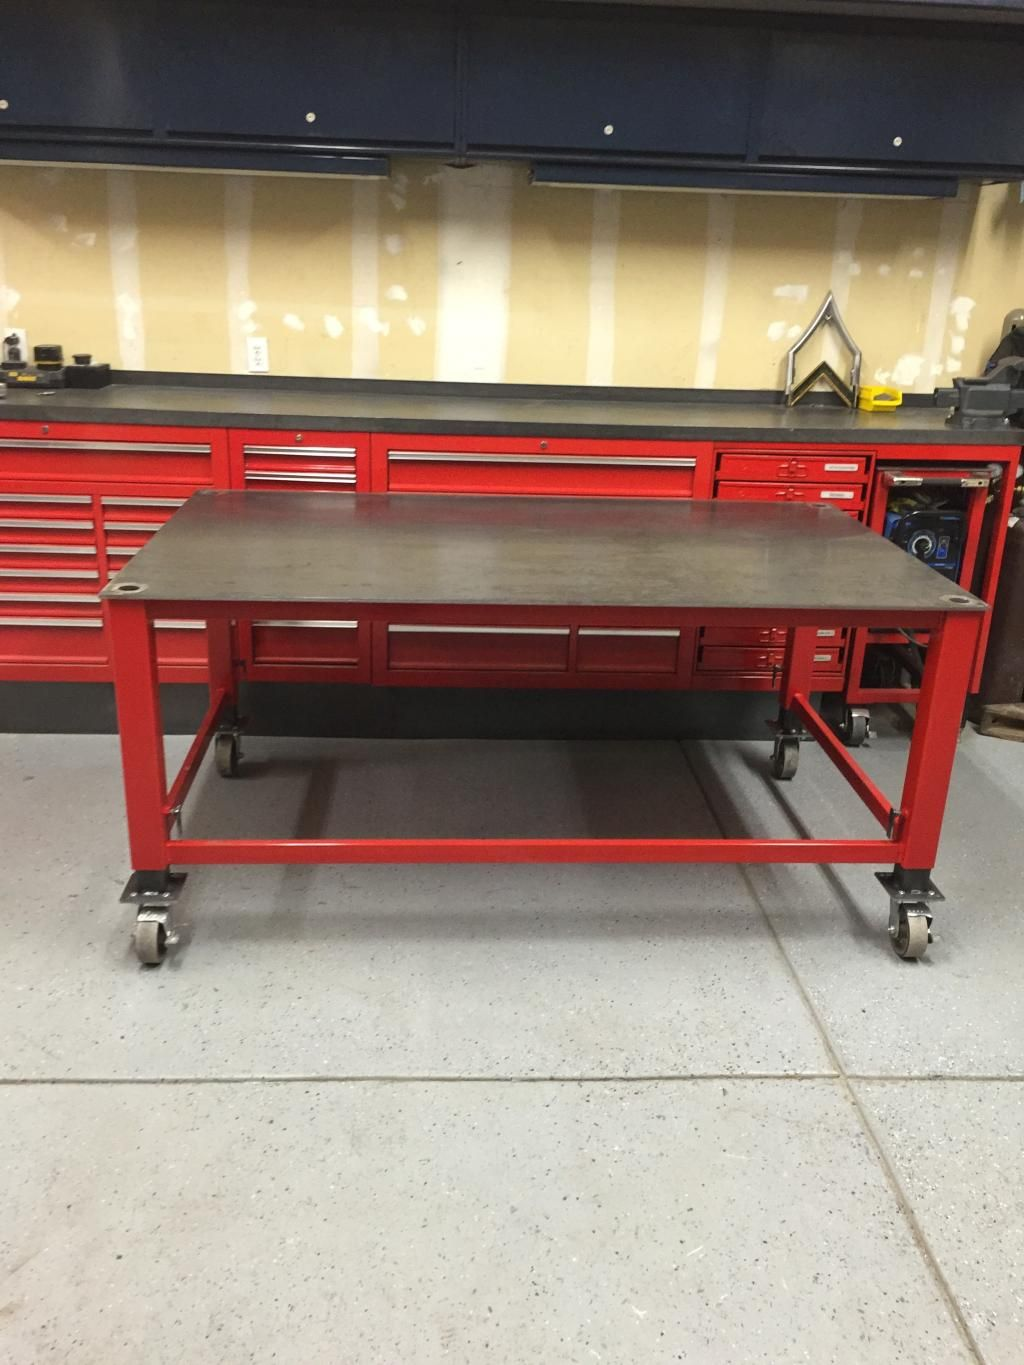 Mesa De Soldadura Adjustable Welding Shop Table The Garage Journal Board